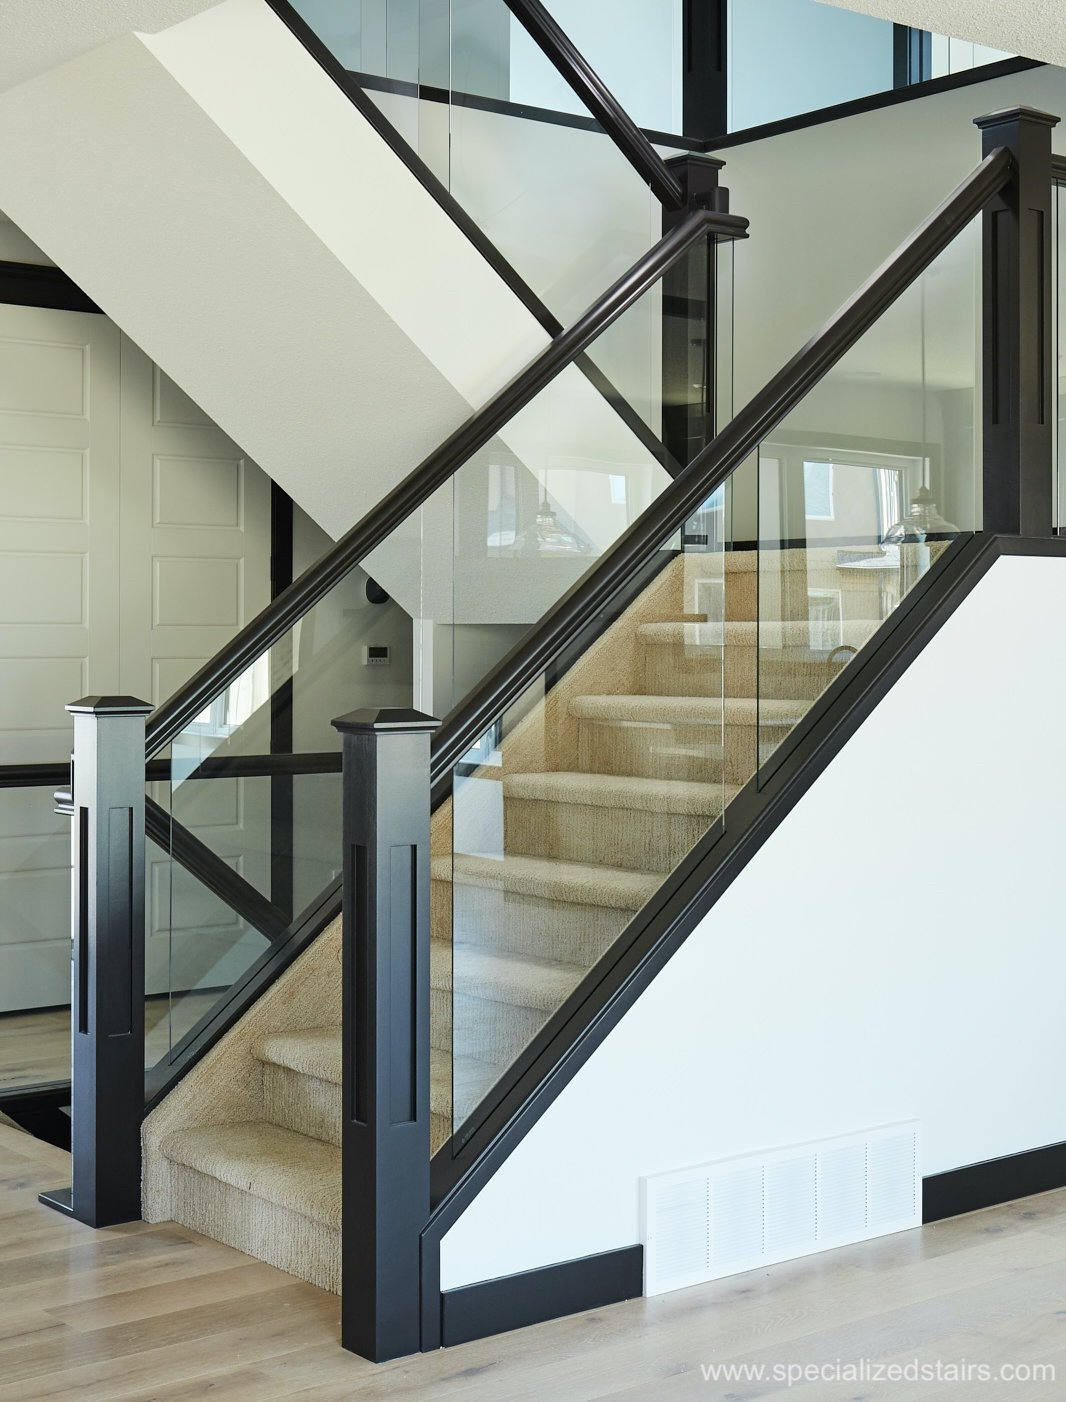 Dadoed Glass Railing Specialized Stair Rail | Glass Balusters For Stairs